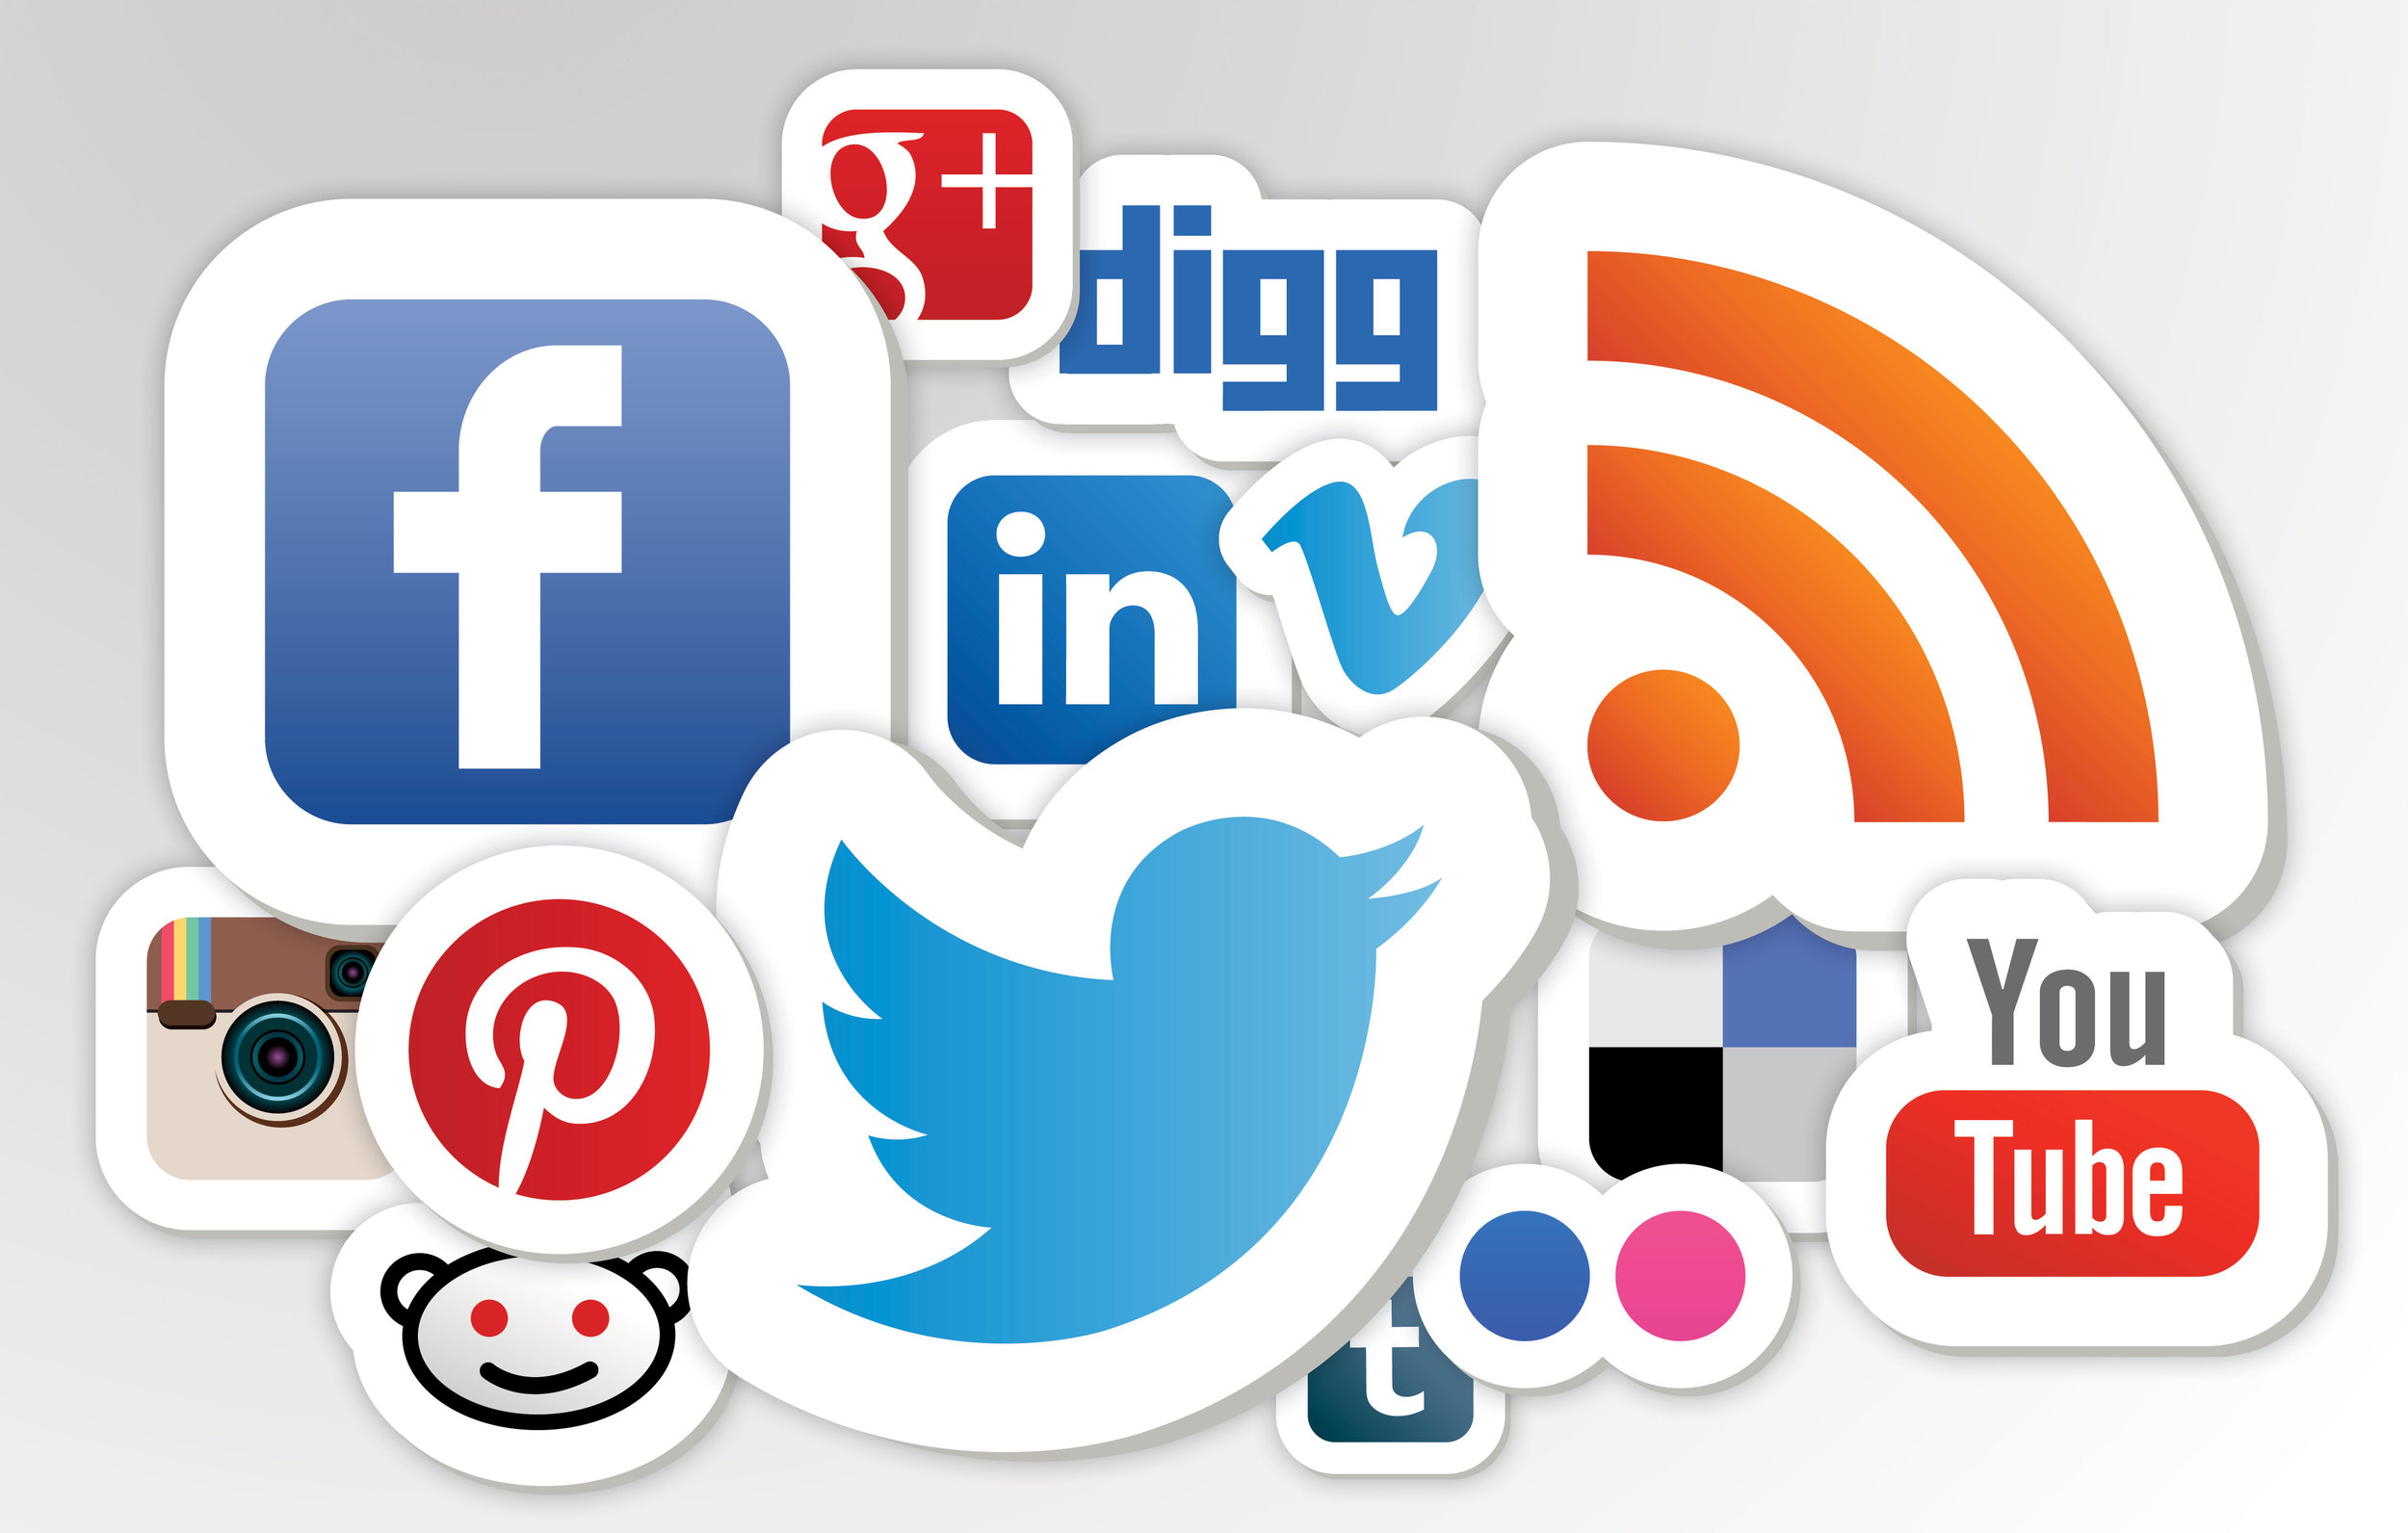 Use as many types of social media as you can to get your brand out there Google Images